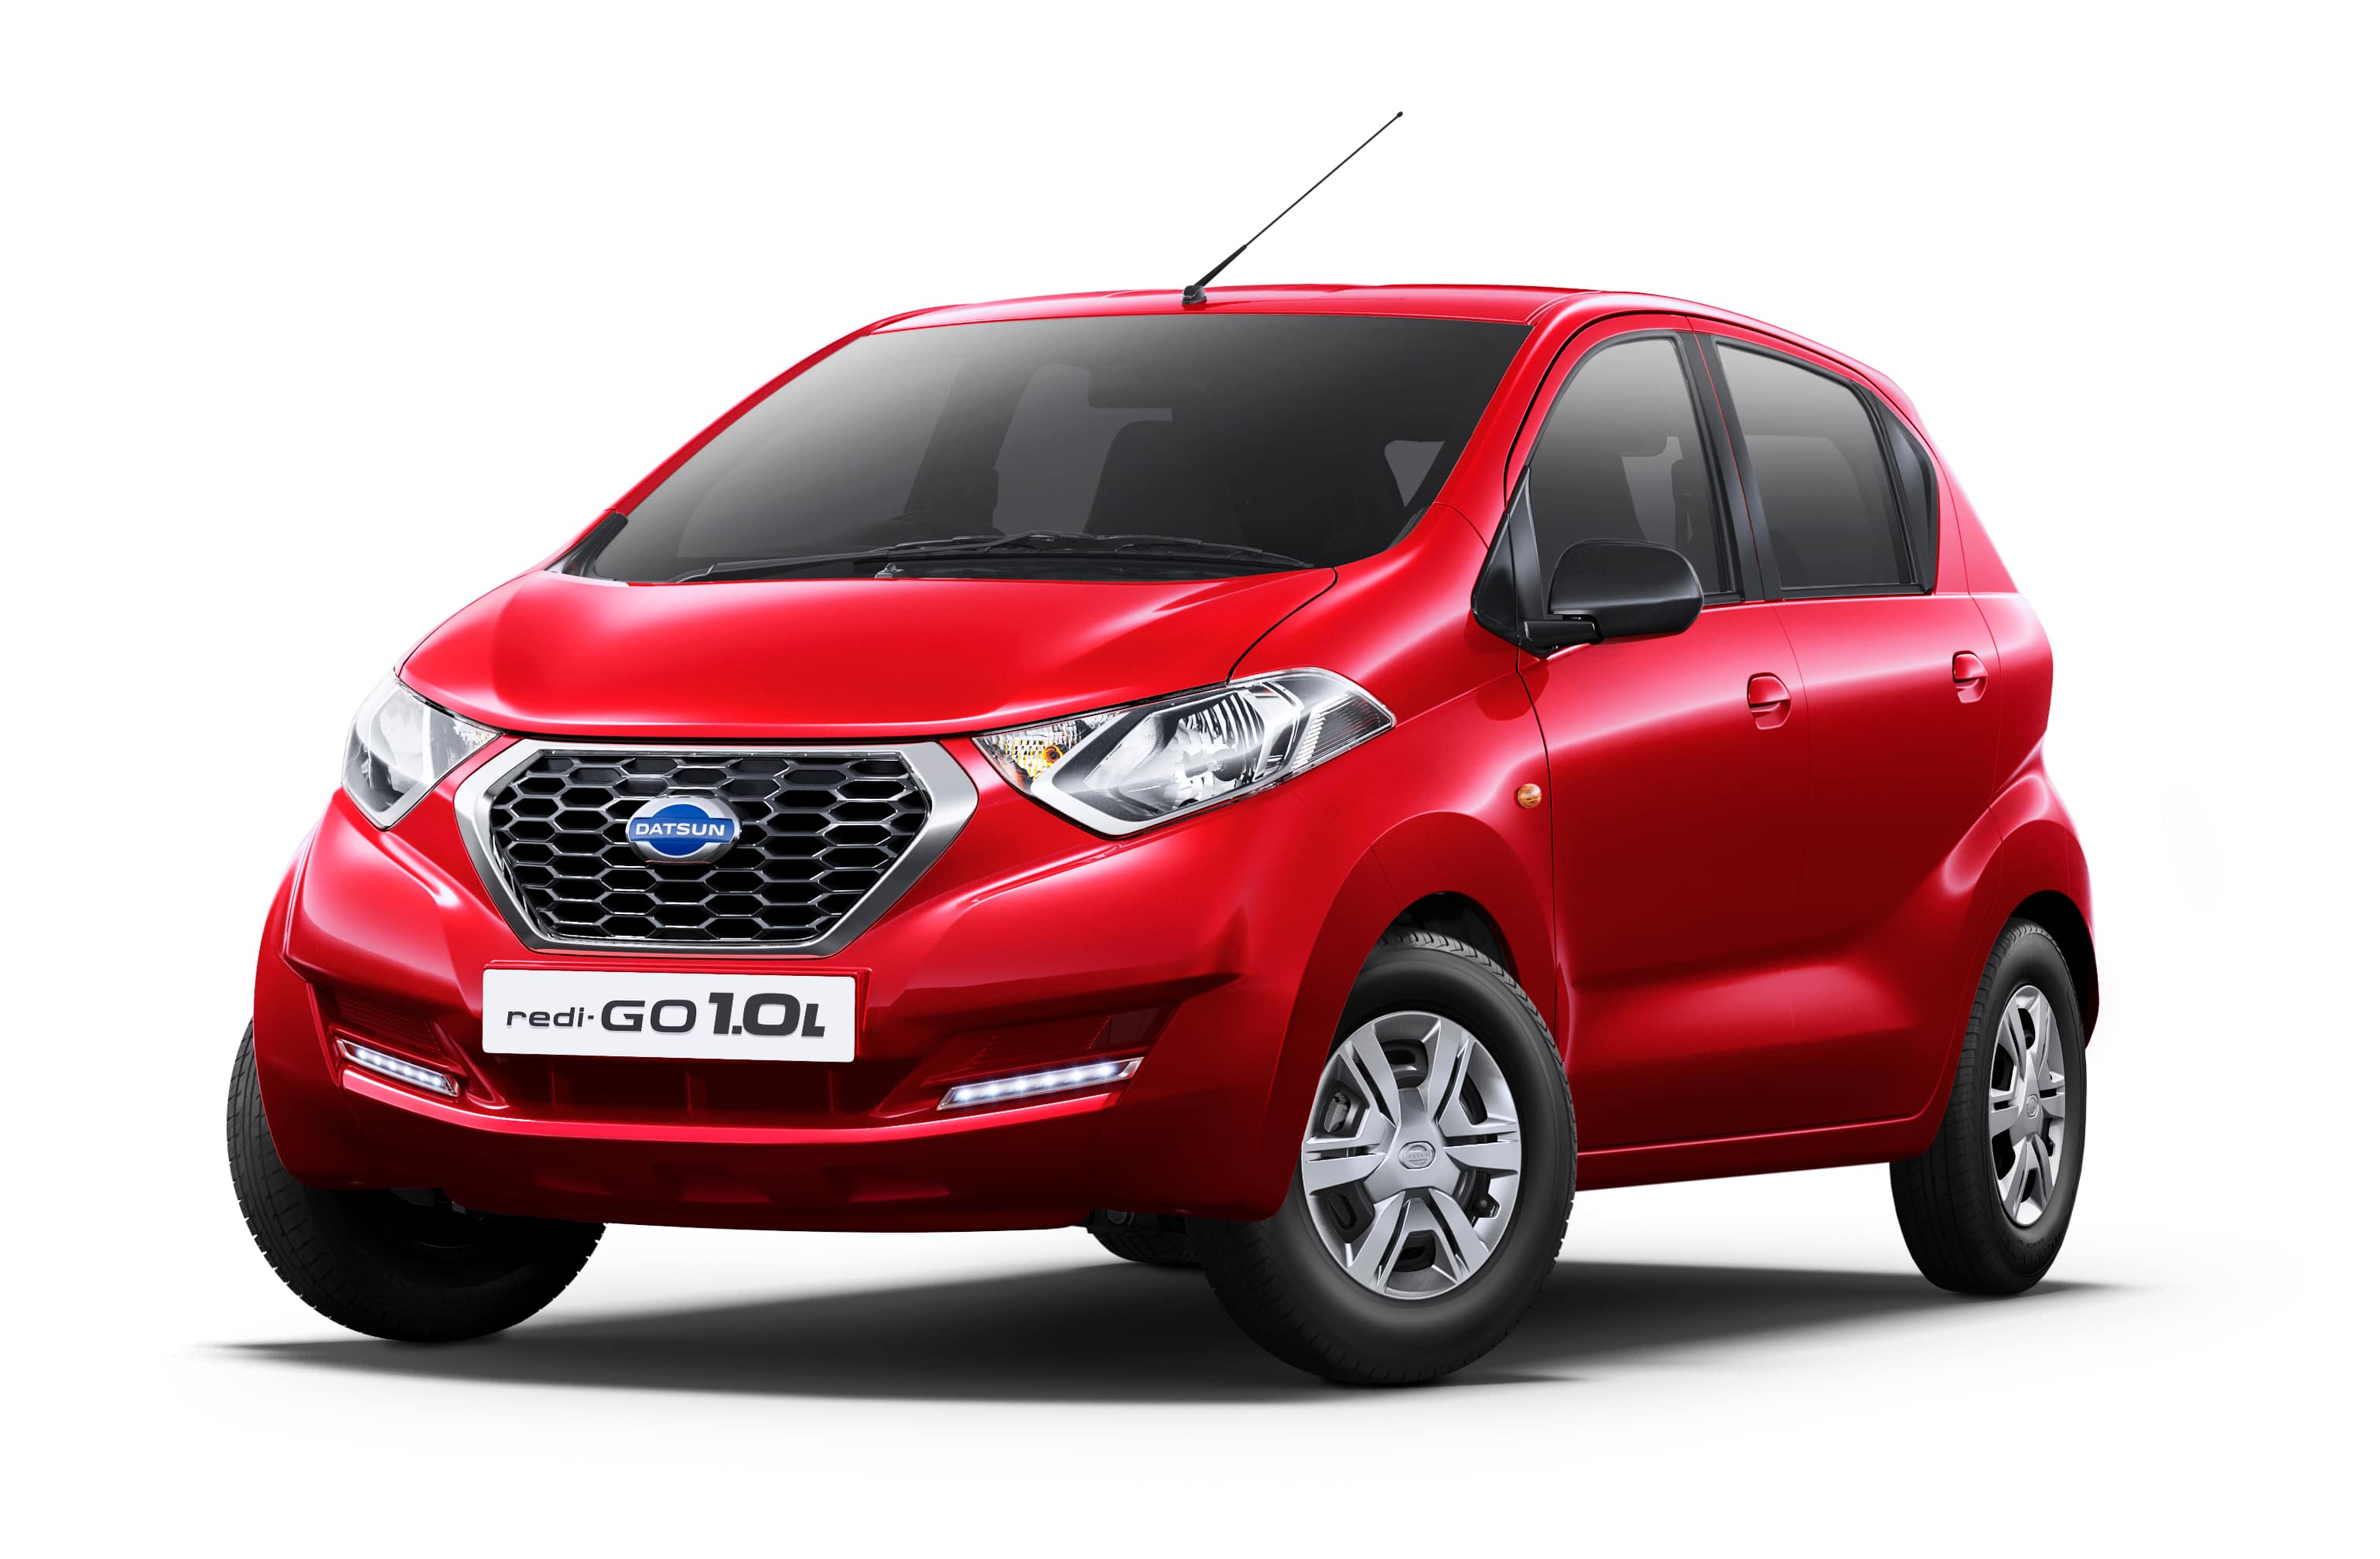 Datsun redi-GO 1.0L AMT Launched; Priced in India at INR 3.80 Lakh